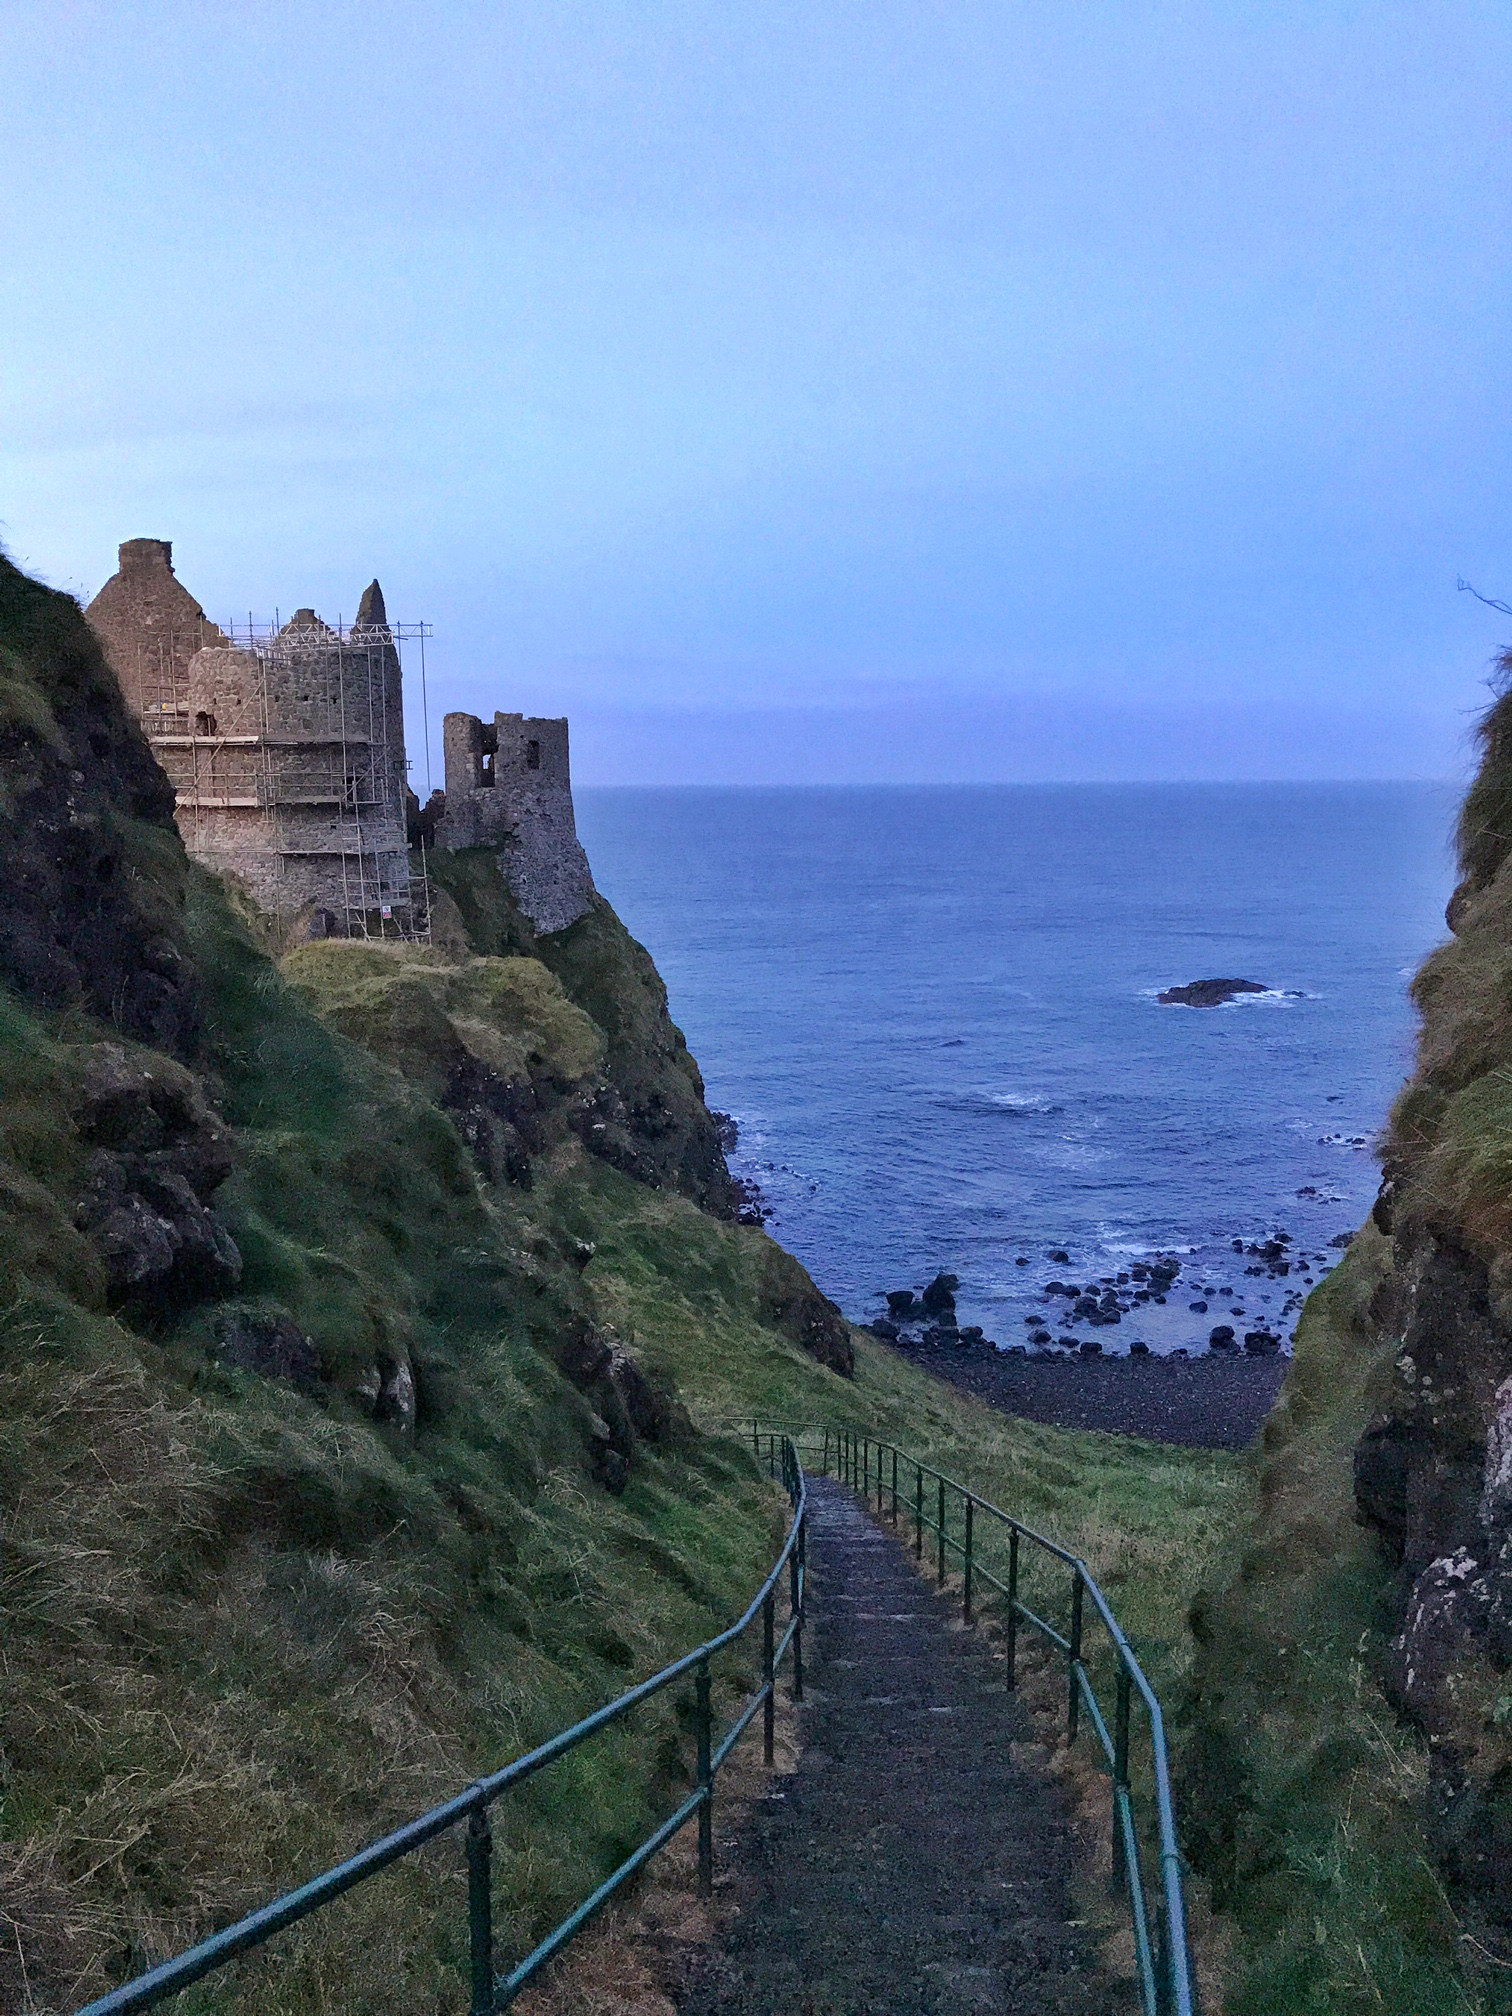 Visitors to the castle can explore the grounds, which include a walk down to the coast, past the cave.